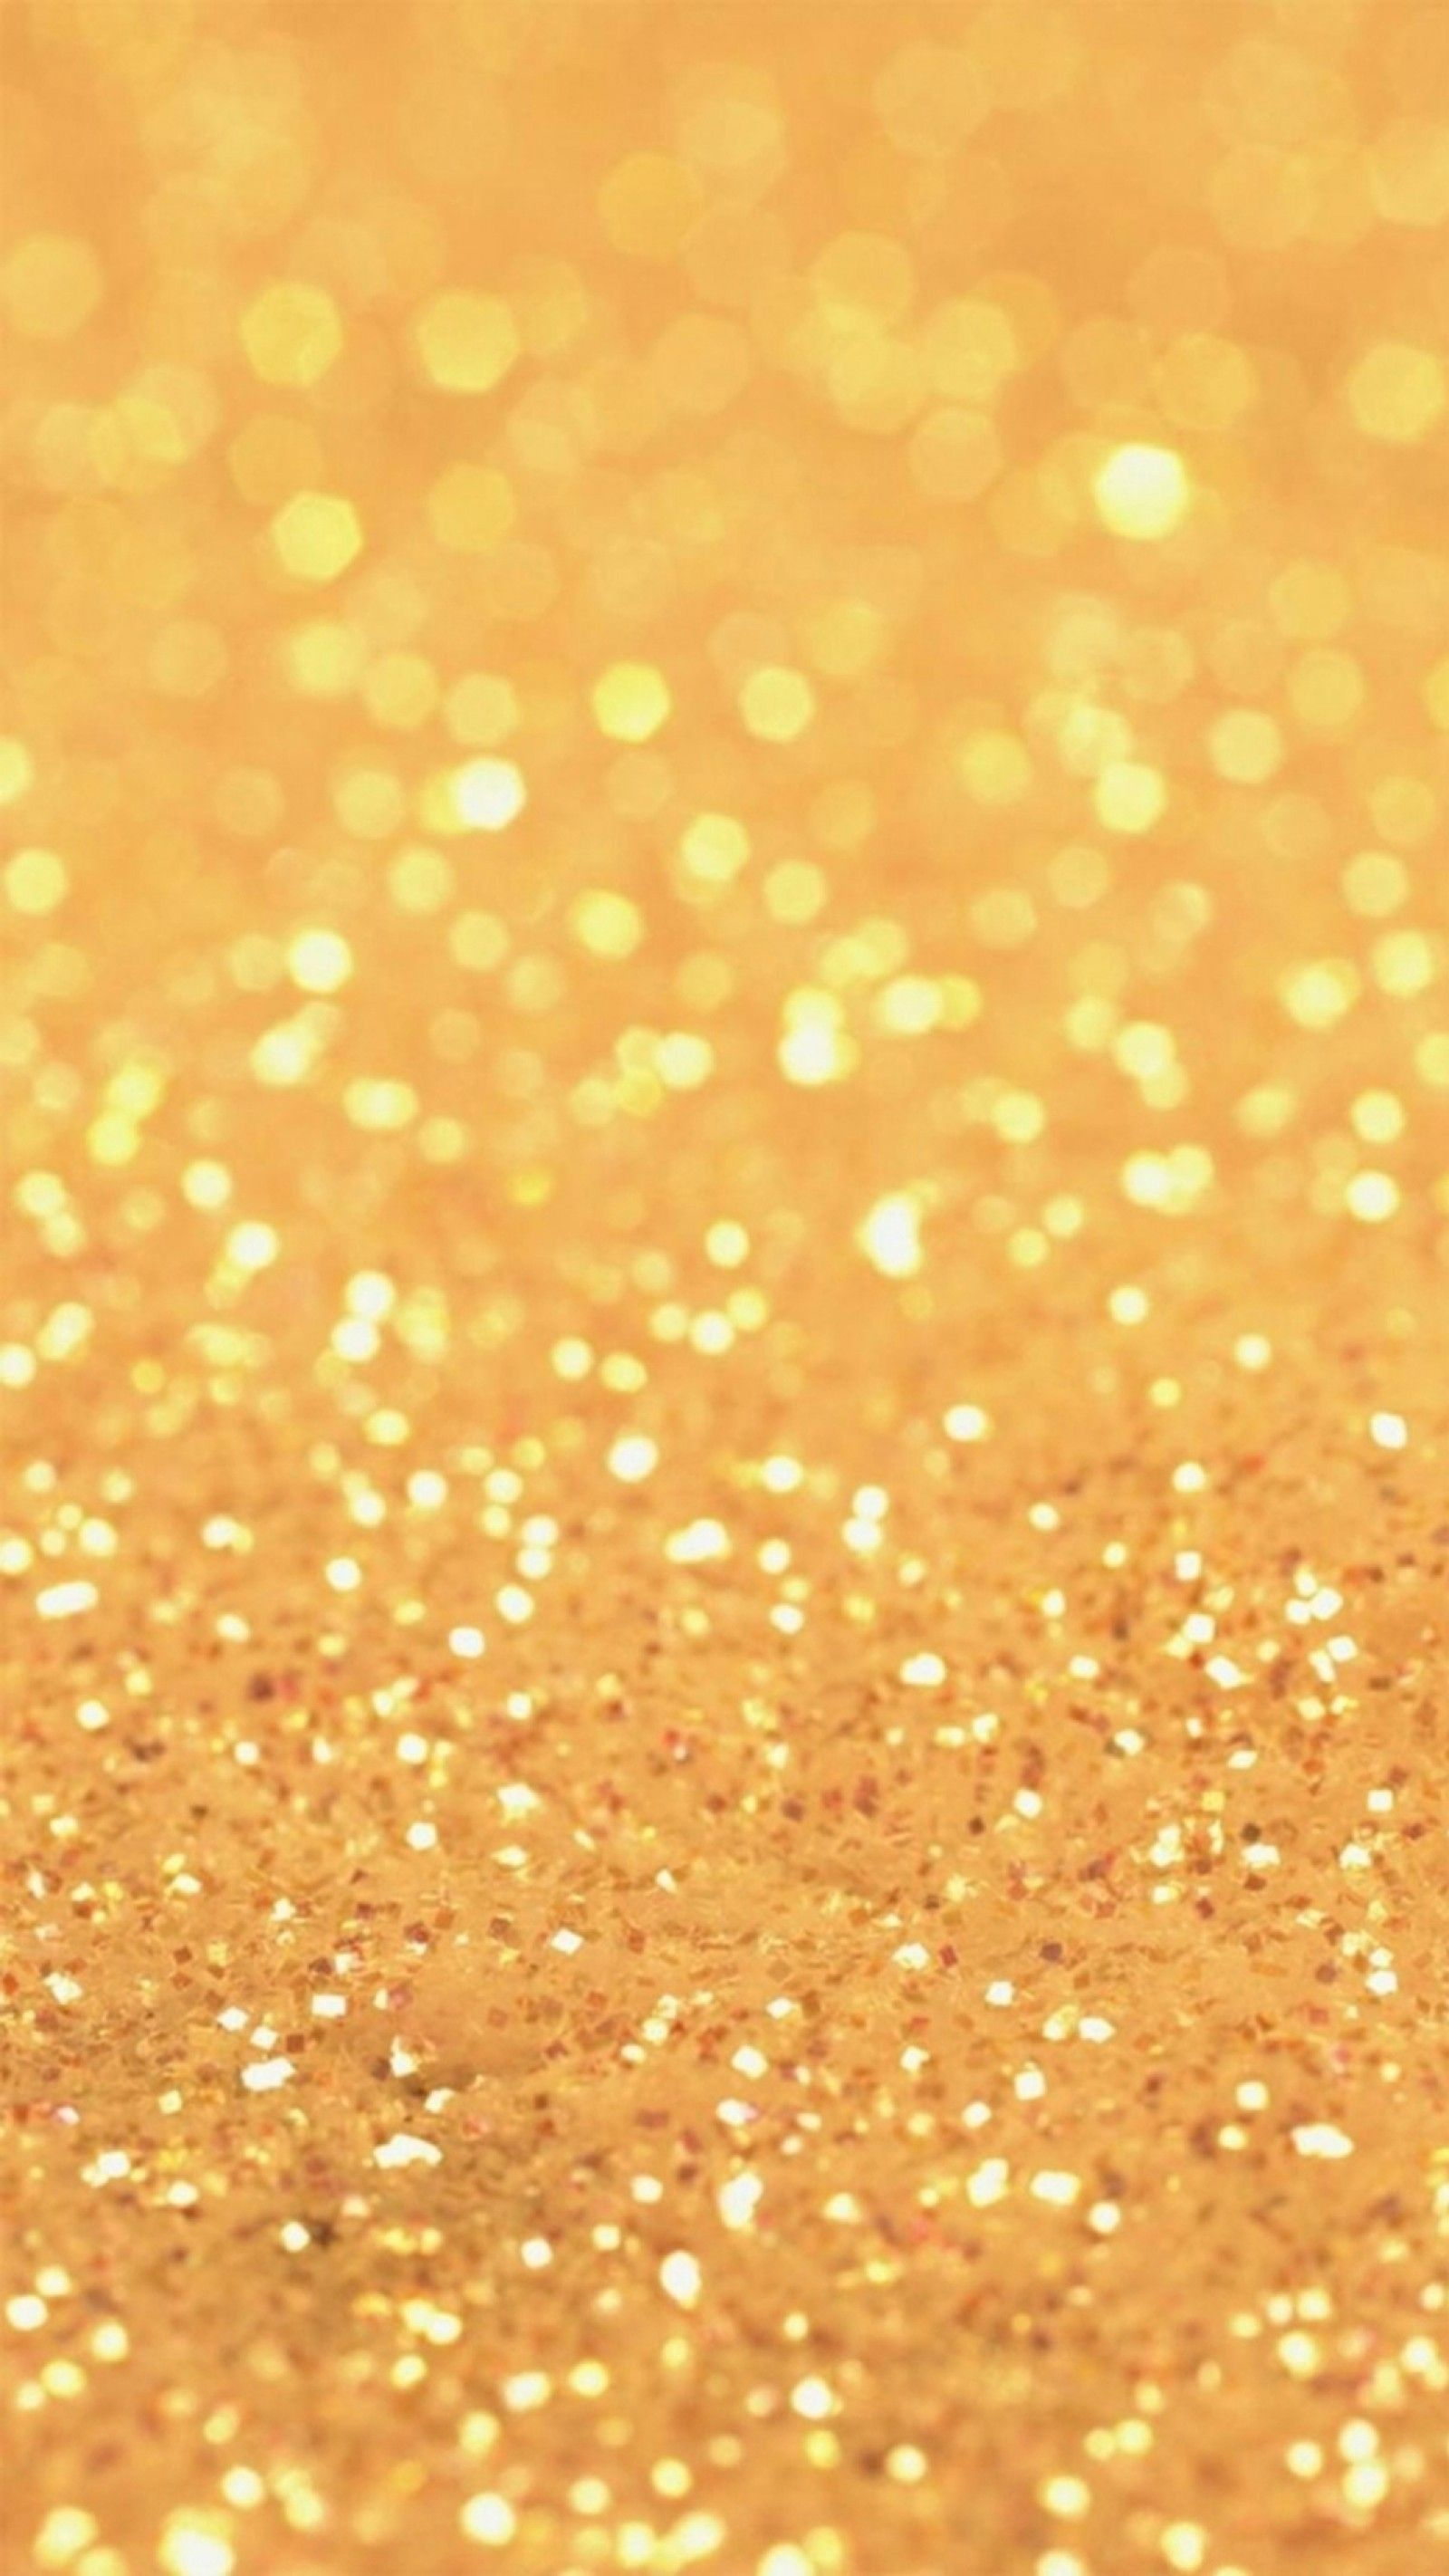 Gold Iphone 5s Wallpapers Top Free Gold Iphone 5s